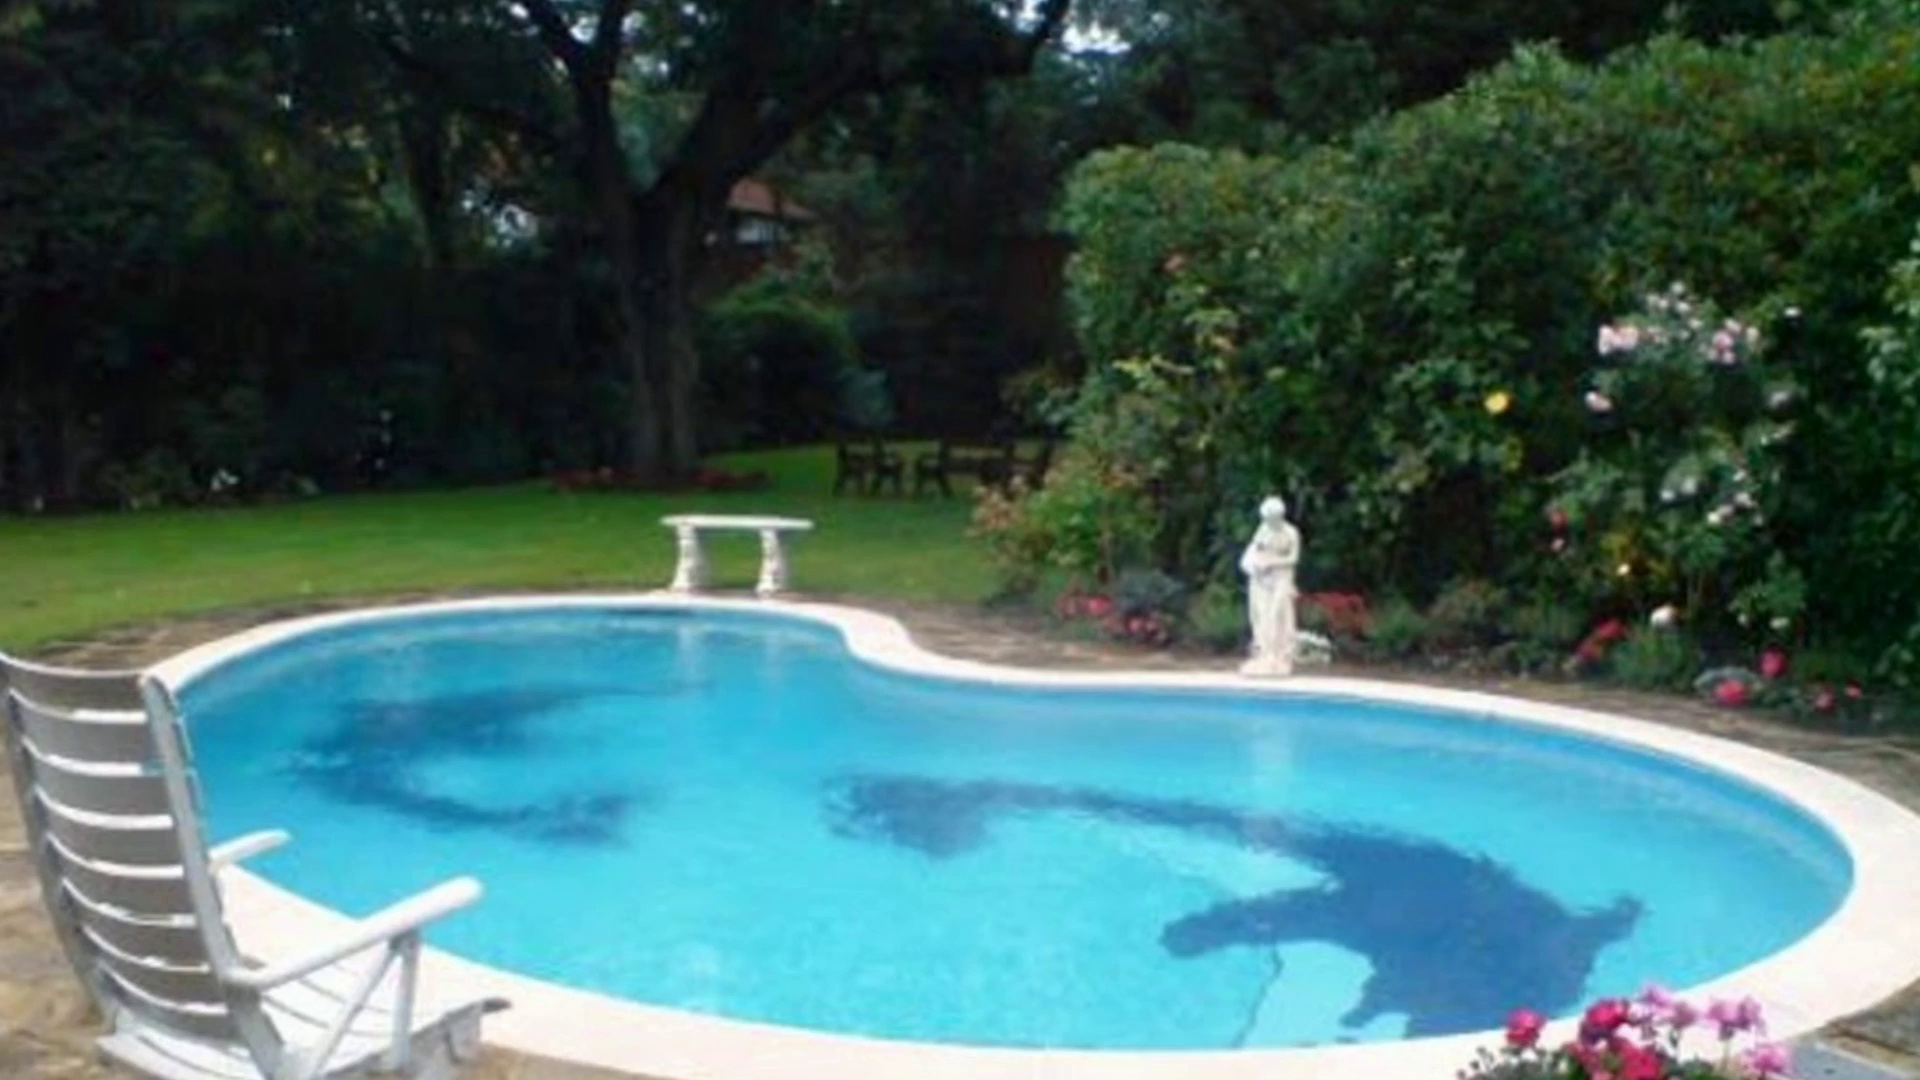 Contact Houston Outdoor Renovations for Custom Pools and Spas